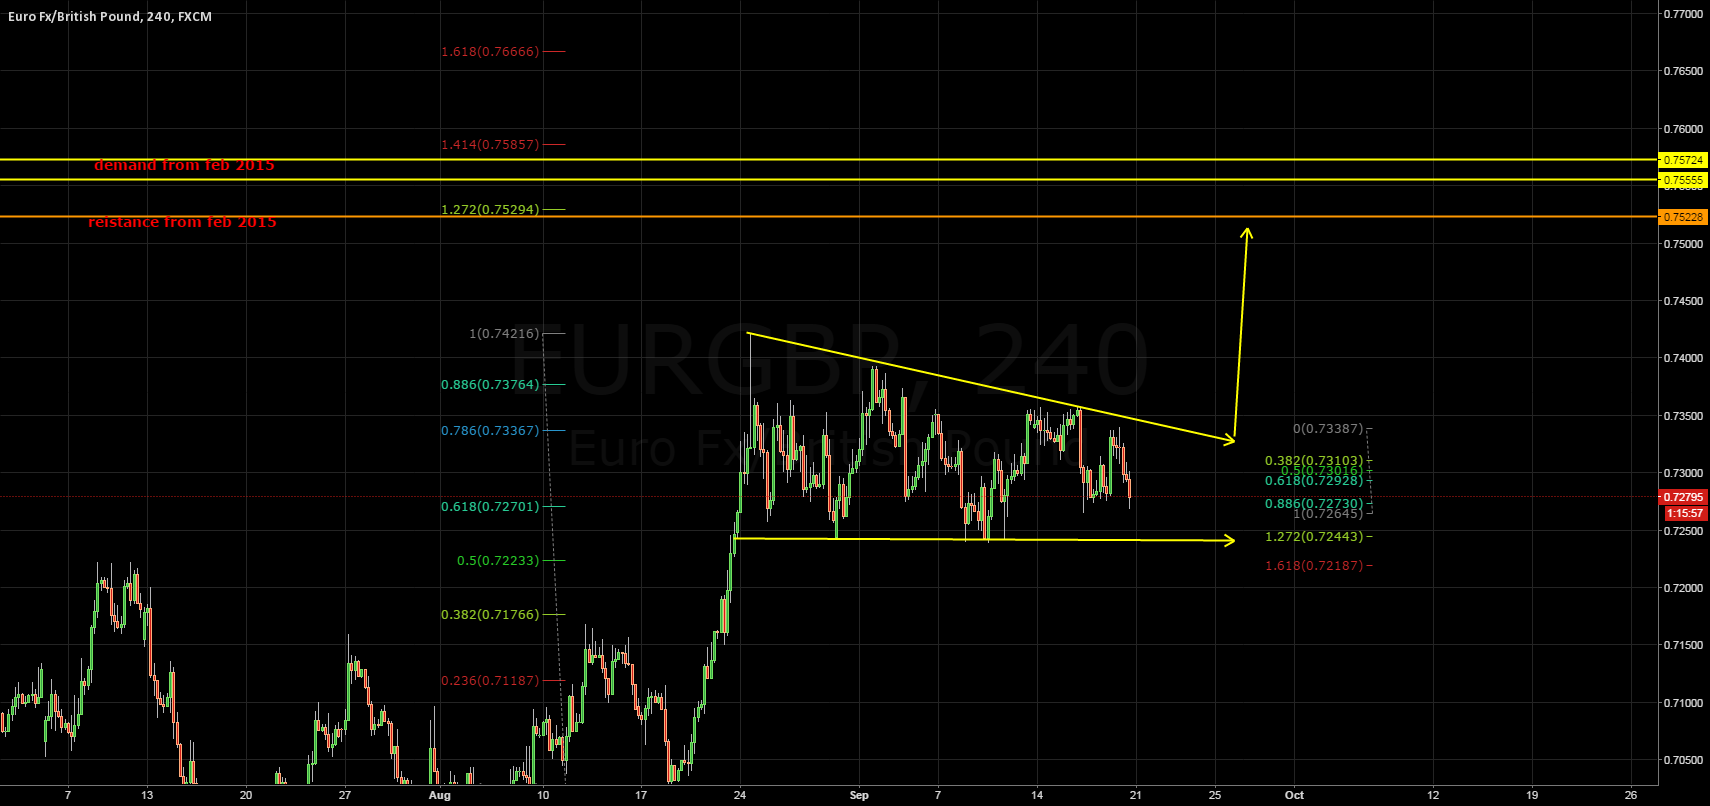 Possible pattern with fib confluence and previous structure